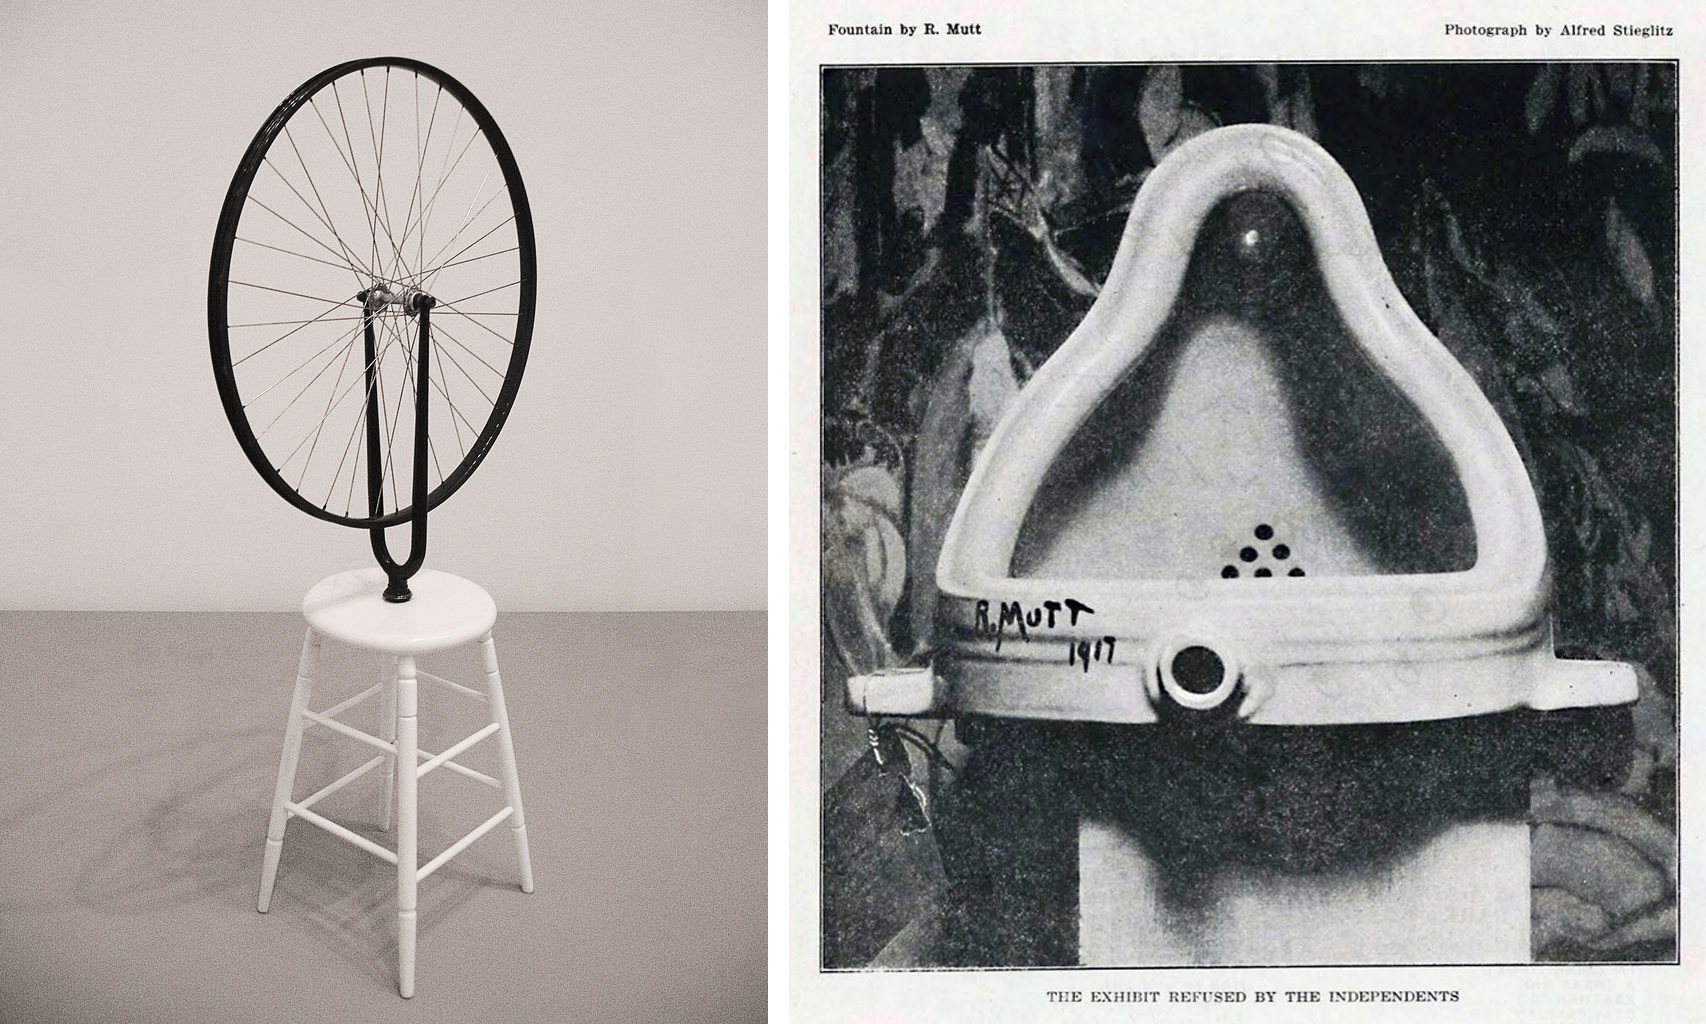 Left: Marcel Duchamp, Bicycle Wheel, original 1913, reproduction 1964, wheel and painted wood, 64.8 x 59.7 cm (Philadelphia Museum of Art) (photo: Stefan Powell, CC BY 2.0); Right: Marcel Duchamp, Fountain (original), photographed by Alfred Stieglitz in 1917 after its rejection by the Society of Independent Artists